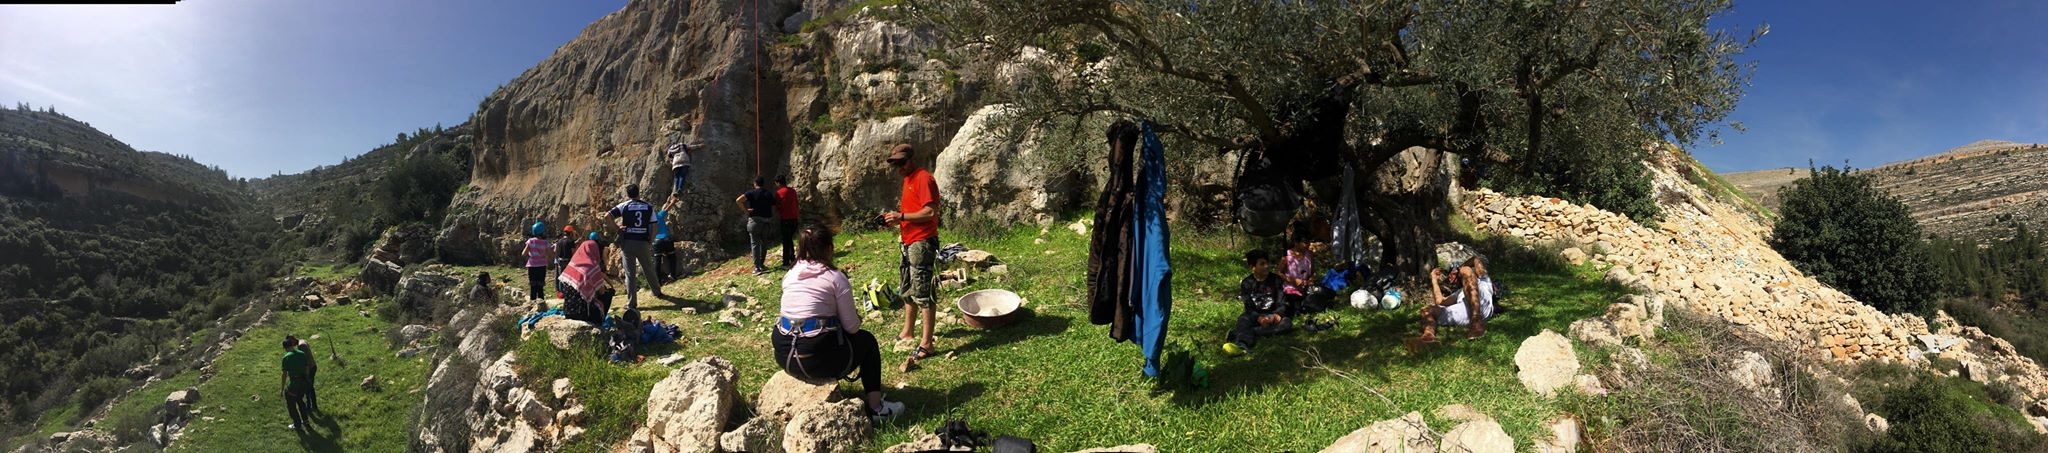 Il progetto climbing in West Bank prosegue!